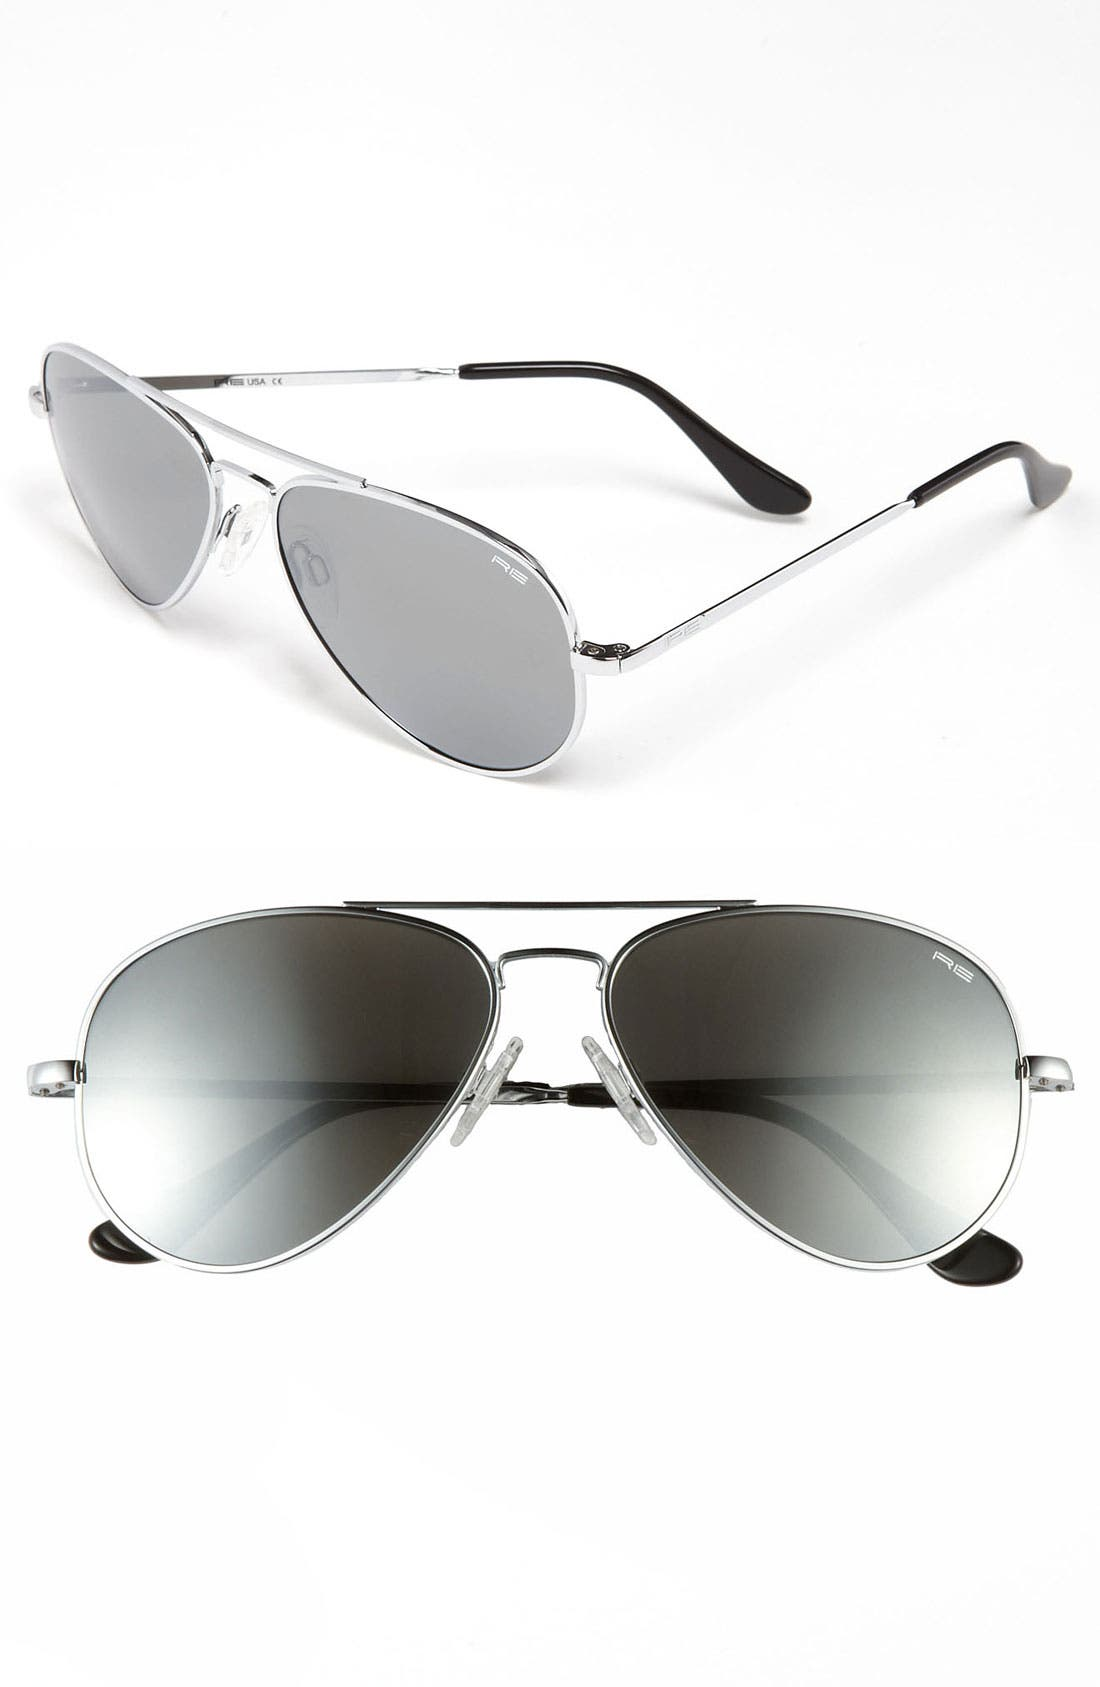 Main Image - Randolph Engineering 'Concorde Classic' 57mm Sunglasses